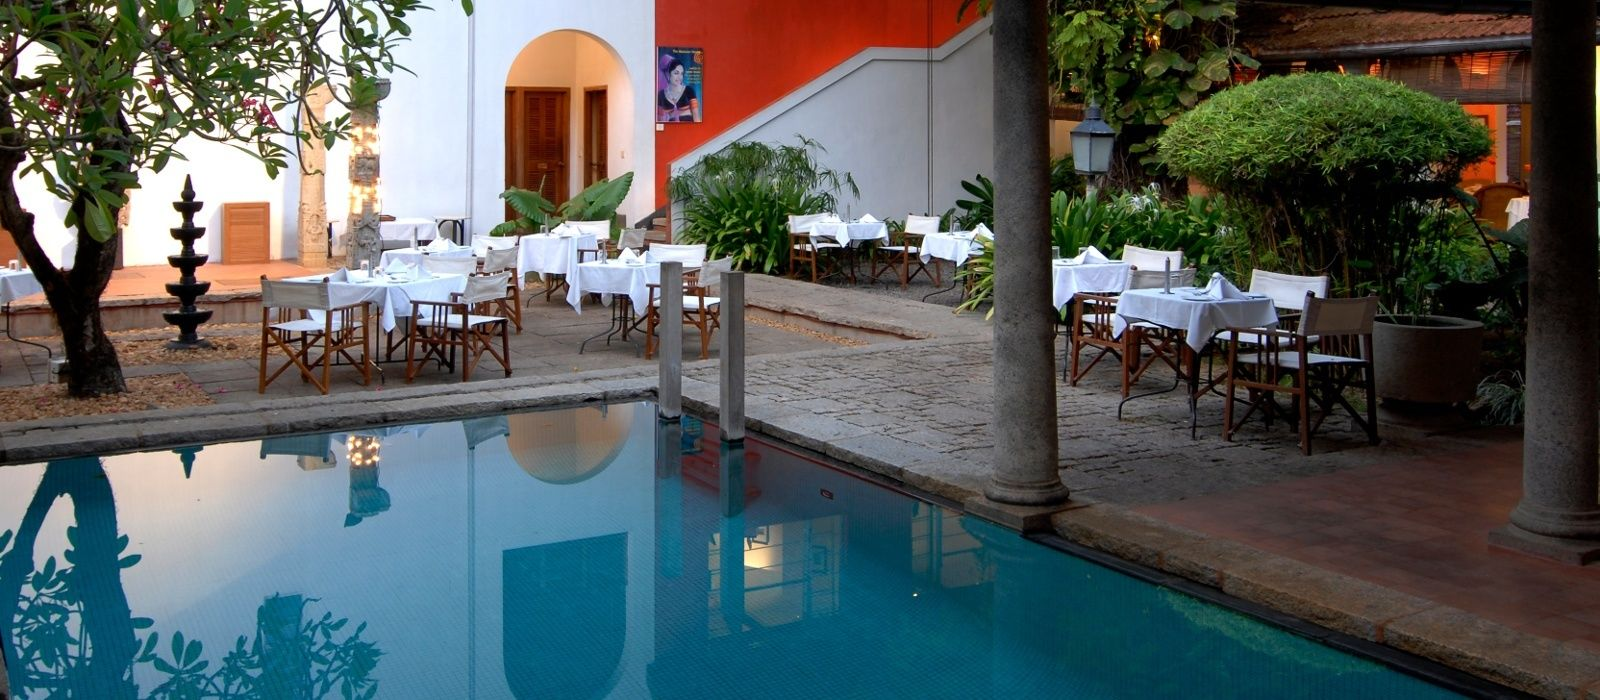 Malabar House Hotel In South India Enchanting Travels